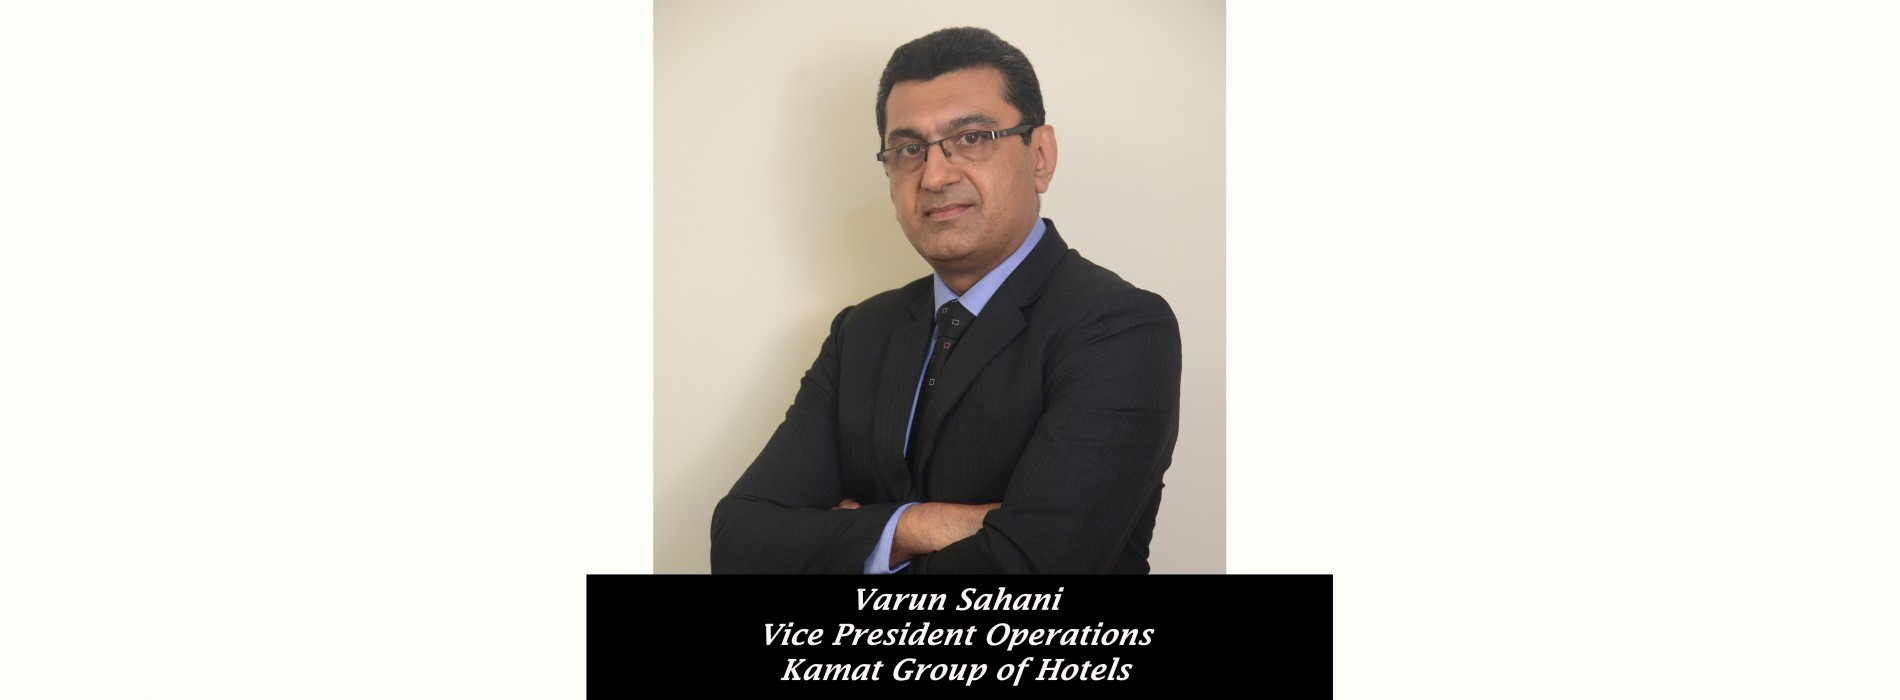 Kamat Group of Hotels appoints Varun Sahani as Vice President Operations